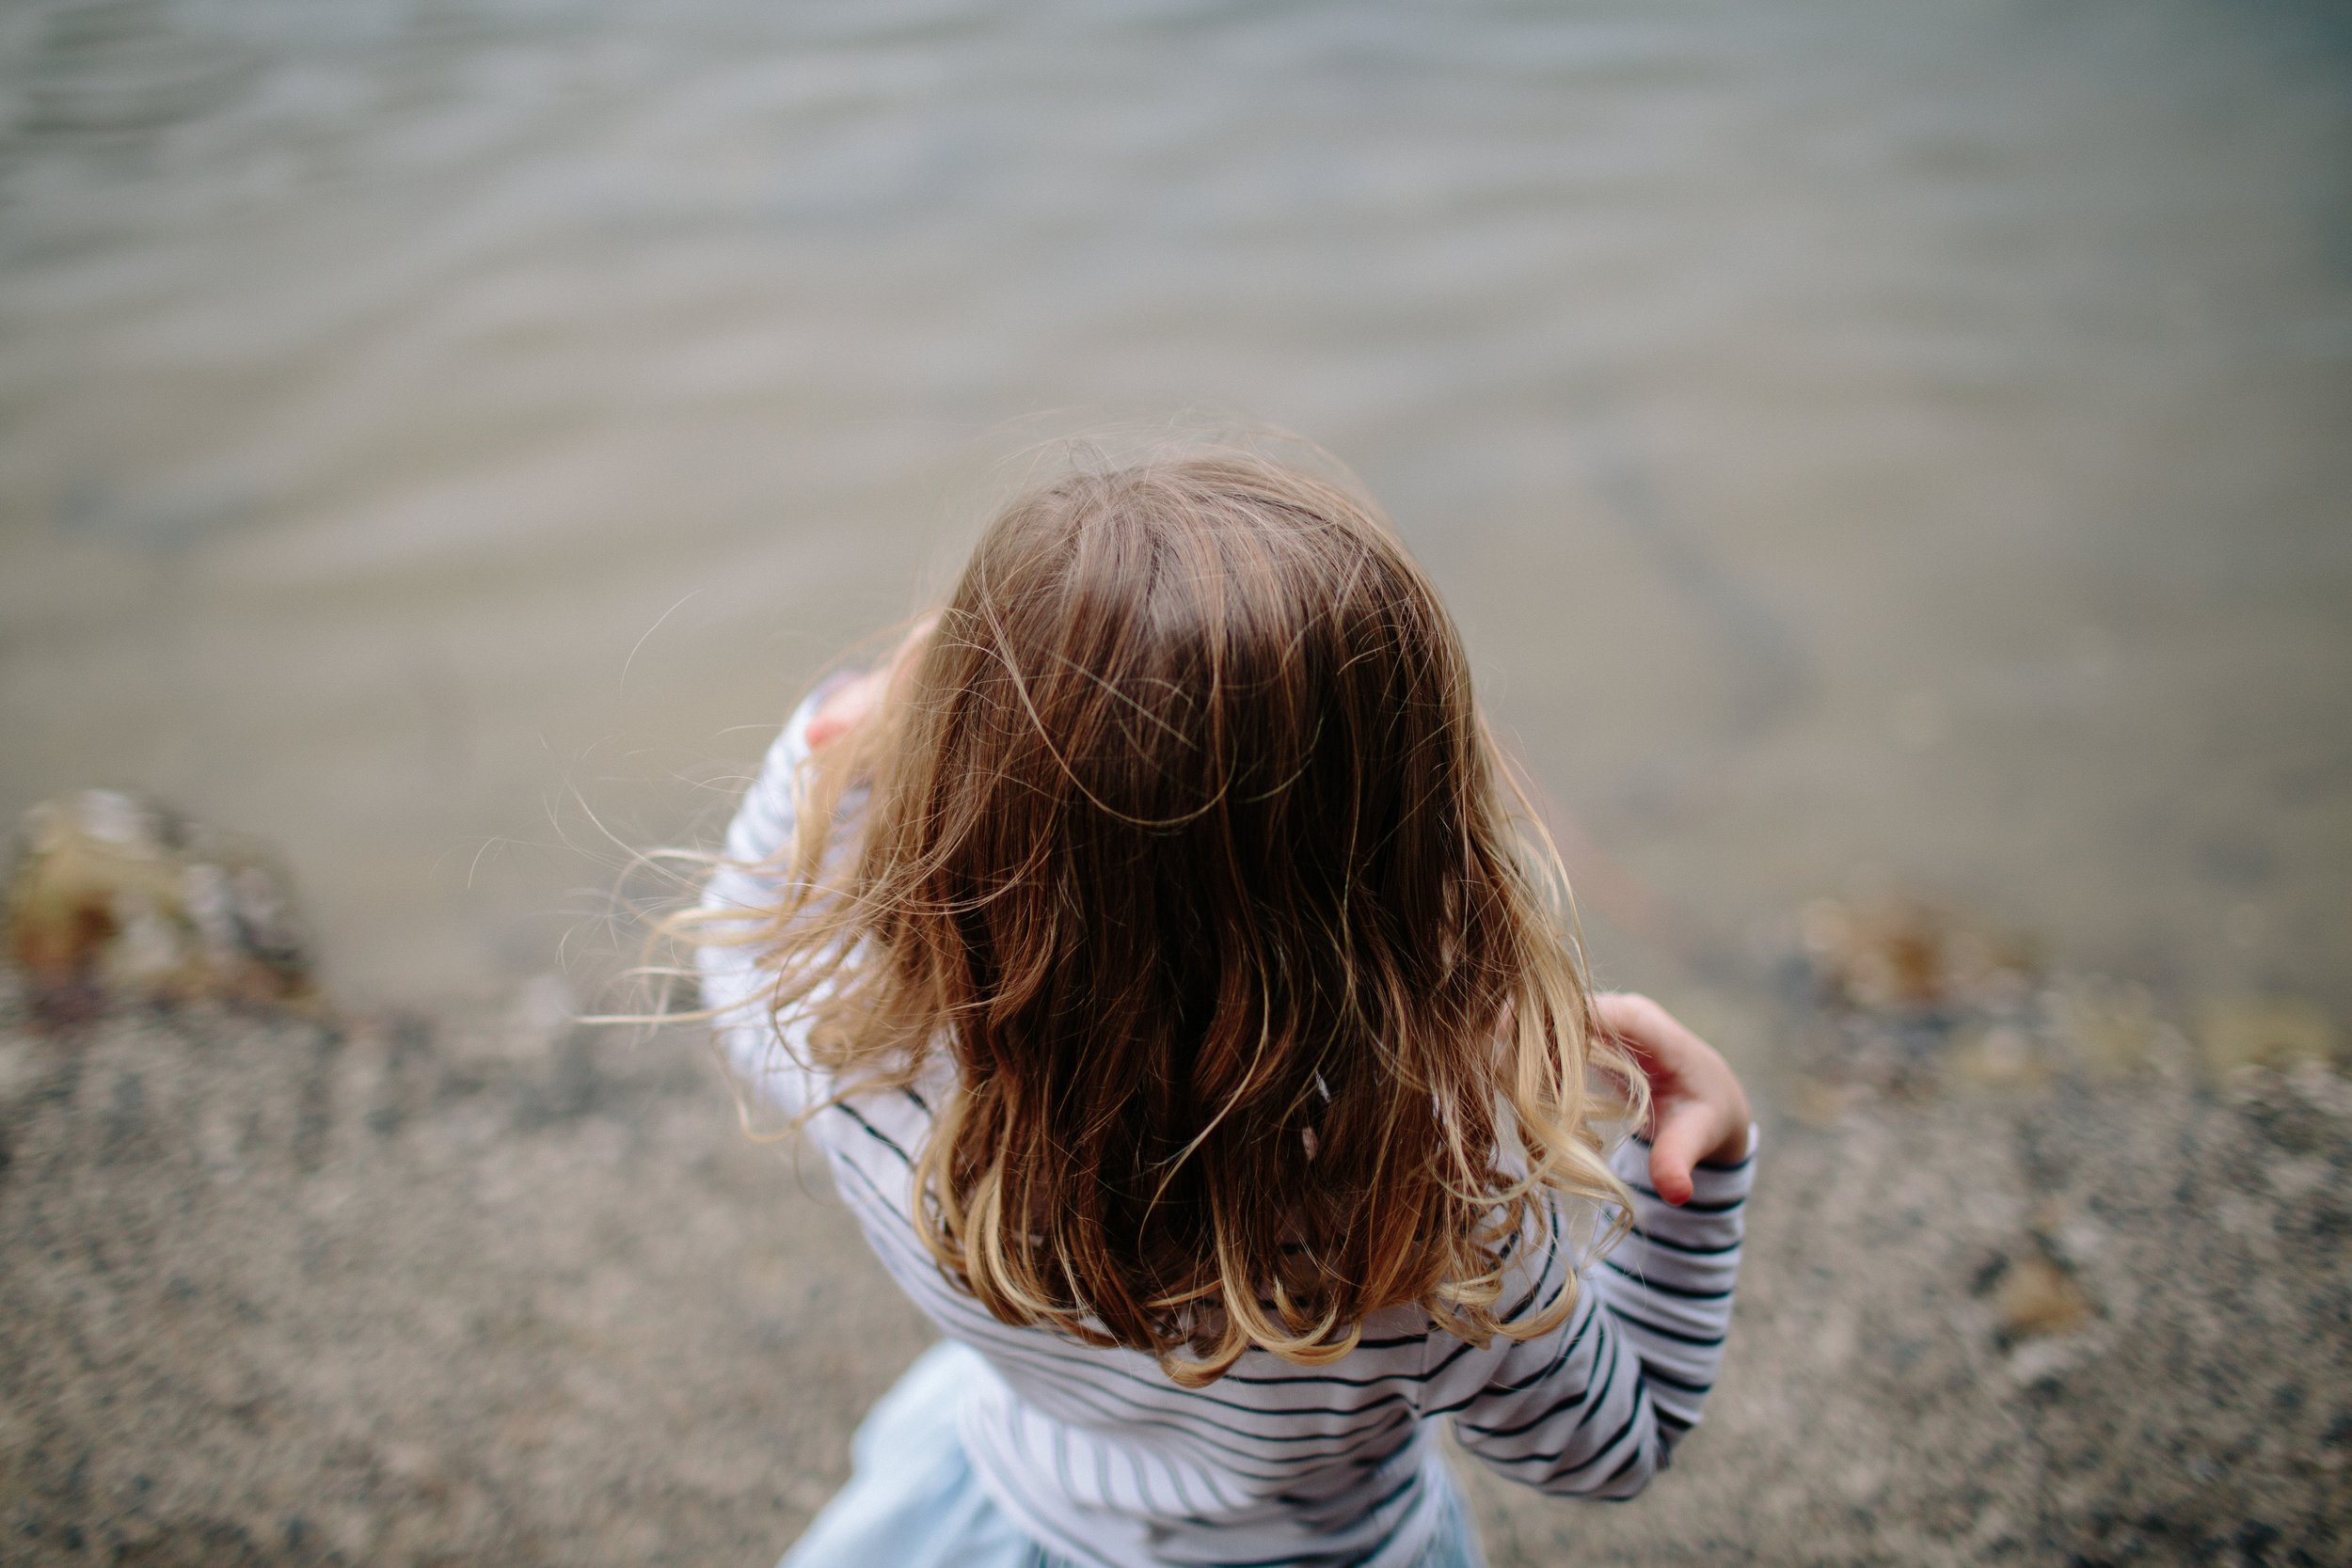 little girl who survived childhood trauma looking down at water